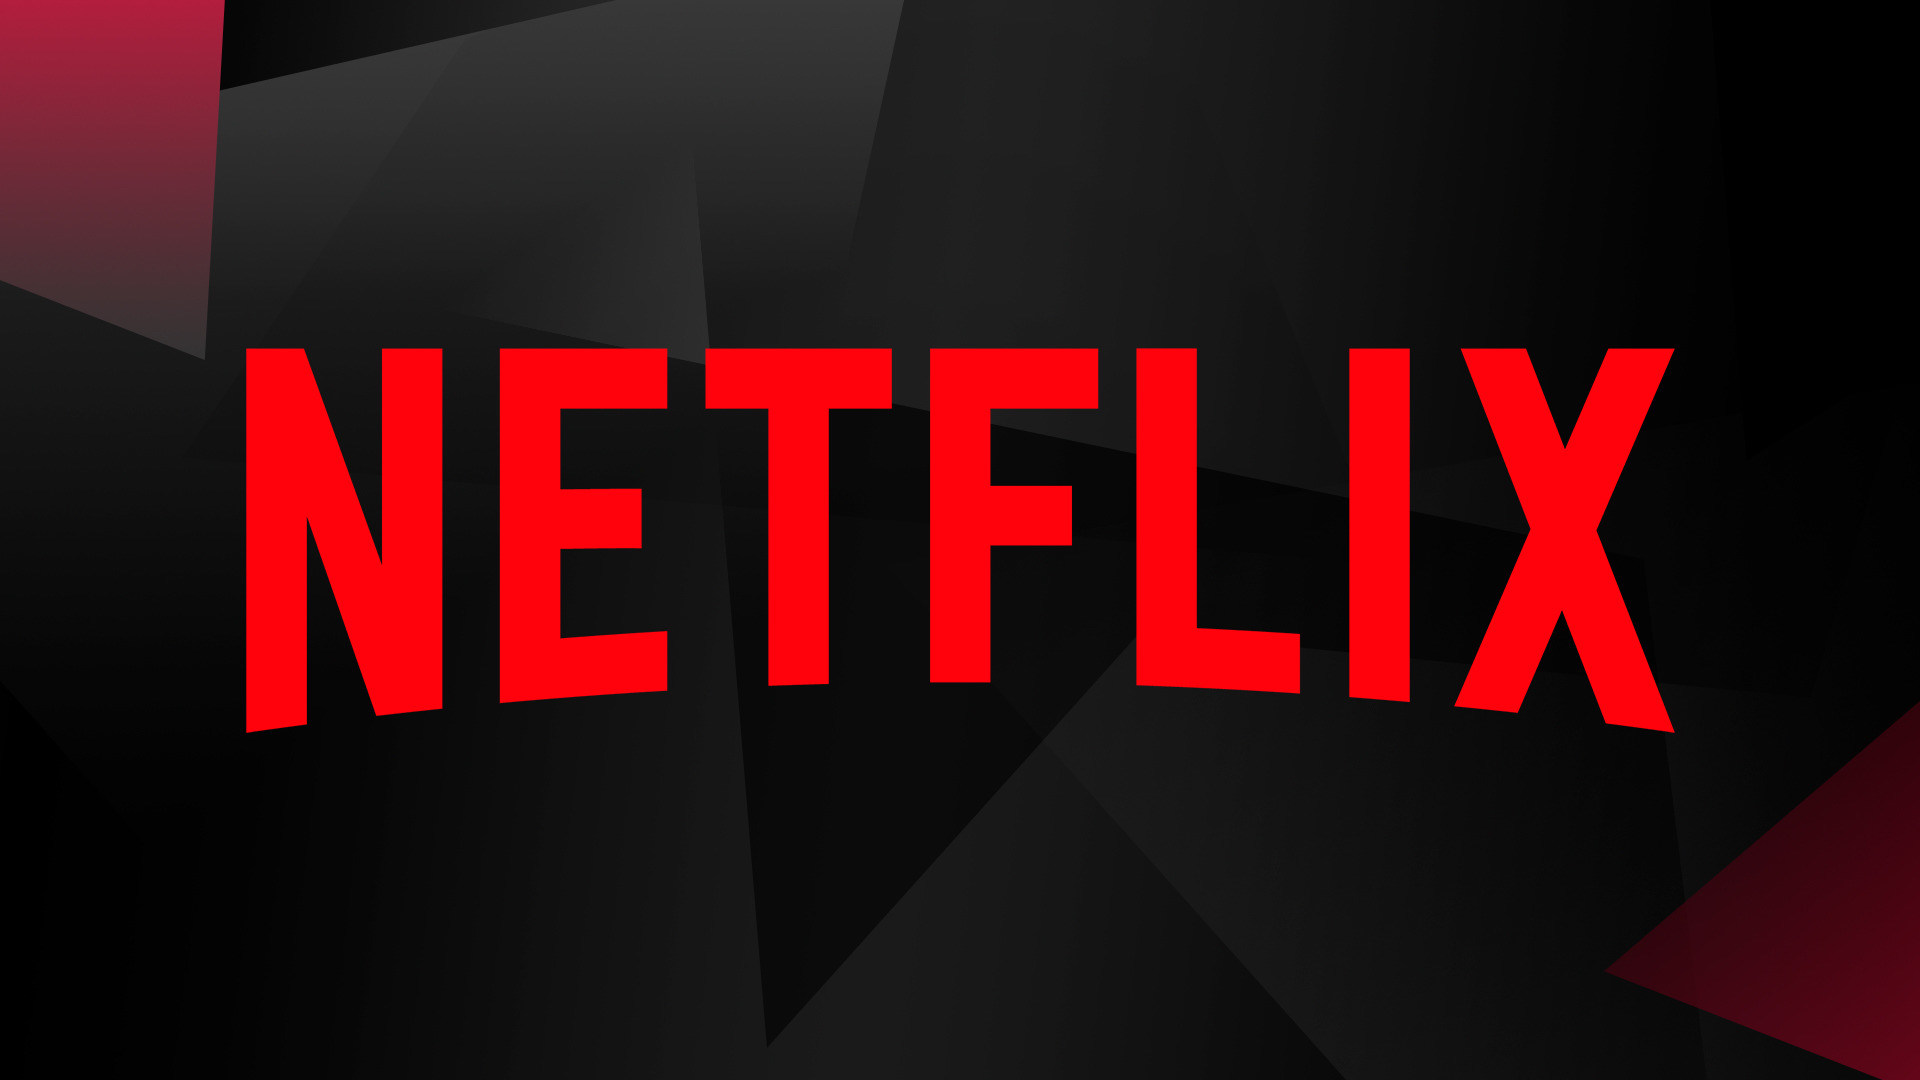 Streaming, Video, Logo, Tv, Fernsehen, Stream, Netflix, Videoplattform, Serie, Filme, Streamingportal, Serien, Videostreaming, Netflix Deutschland, Binge Watching